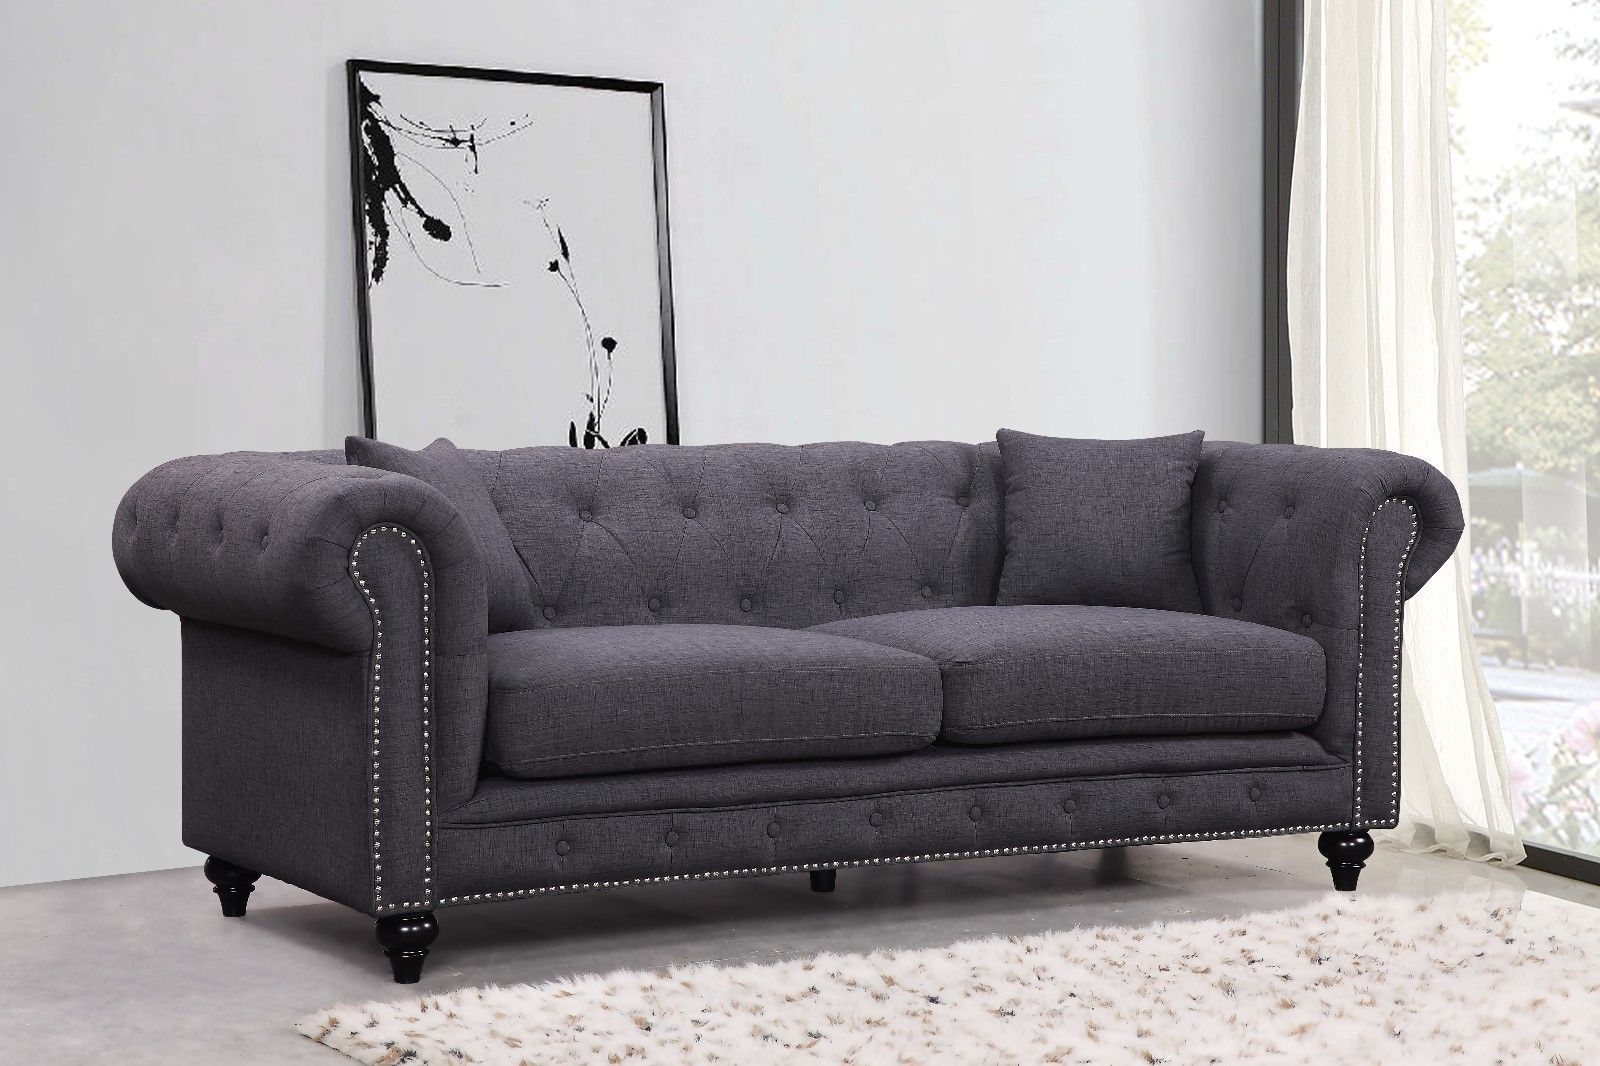 Meridian 662 Linen Fabric Living Room Sofa Tufted Grey Traditional Style